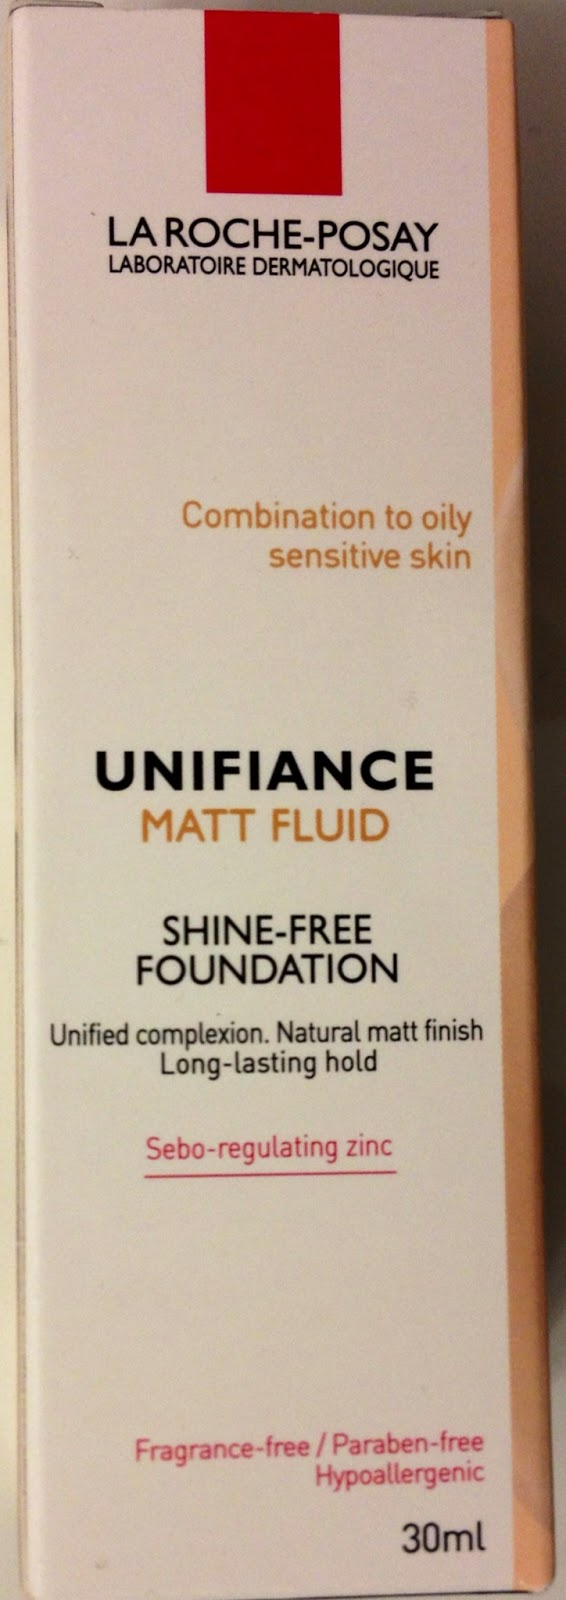 Make Up Nicht Komedogen Beautyrausch: La Roche Posay Unifiance Matt Fluid - 02